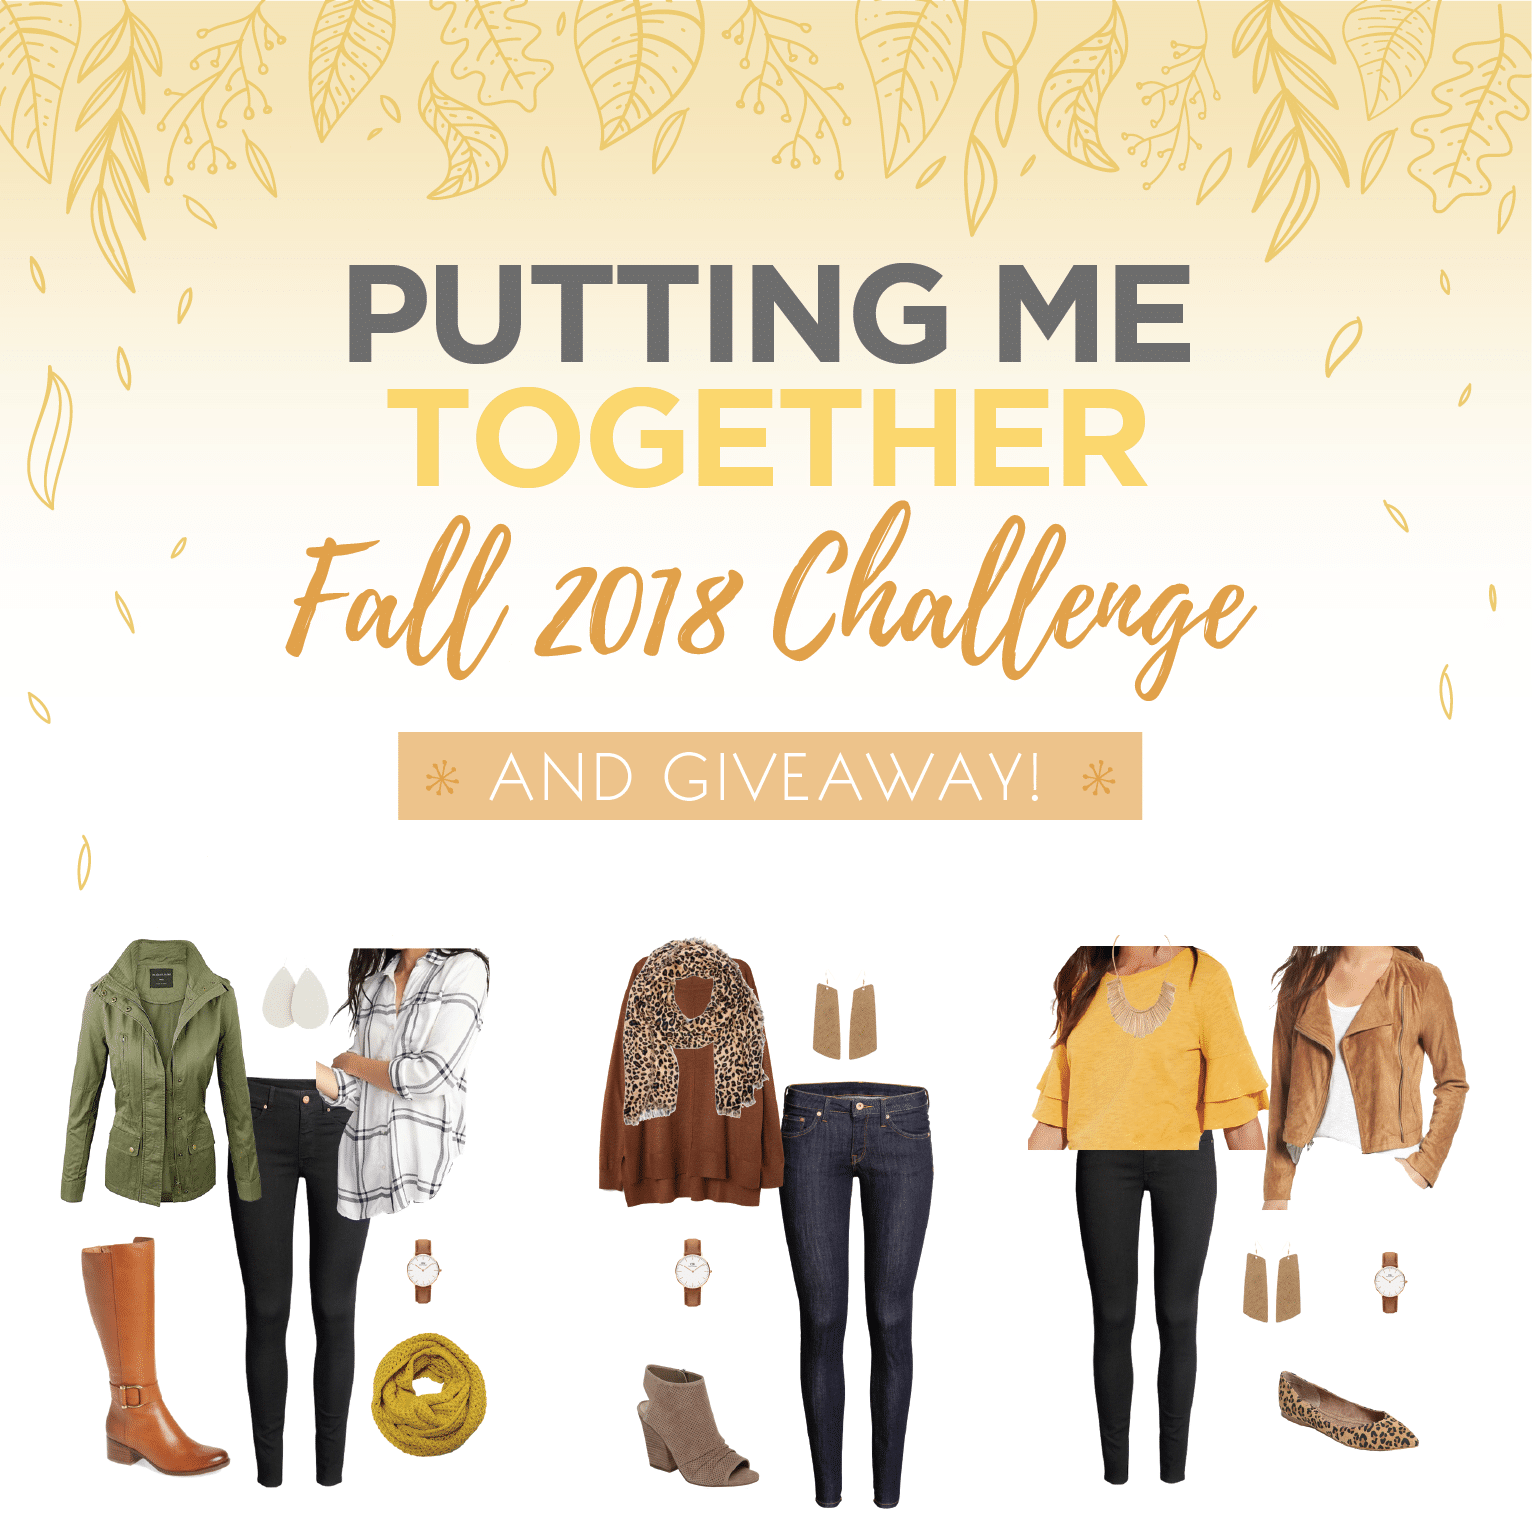 ab7ccfe8028 PMT Fall 2018 Challenge Announcement + GIVEAWAY!